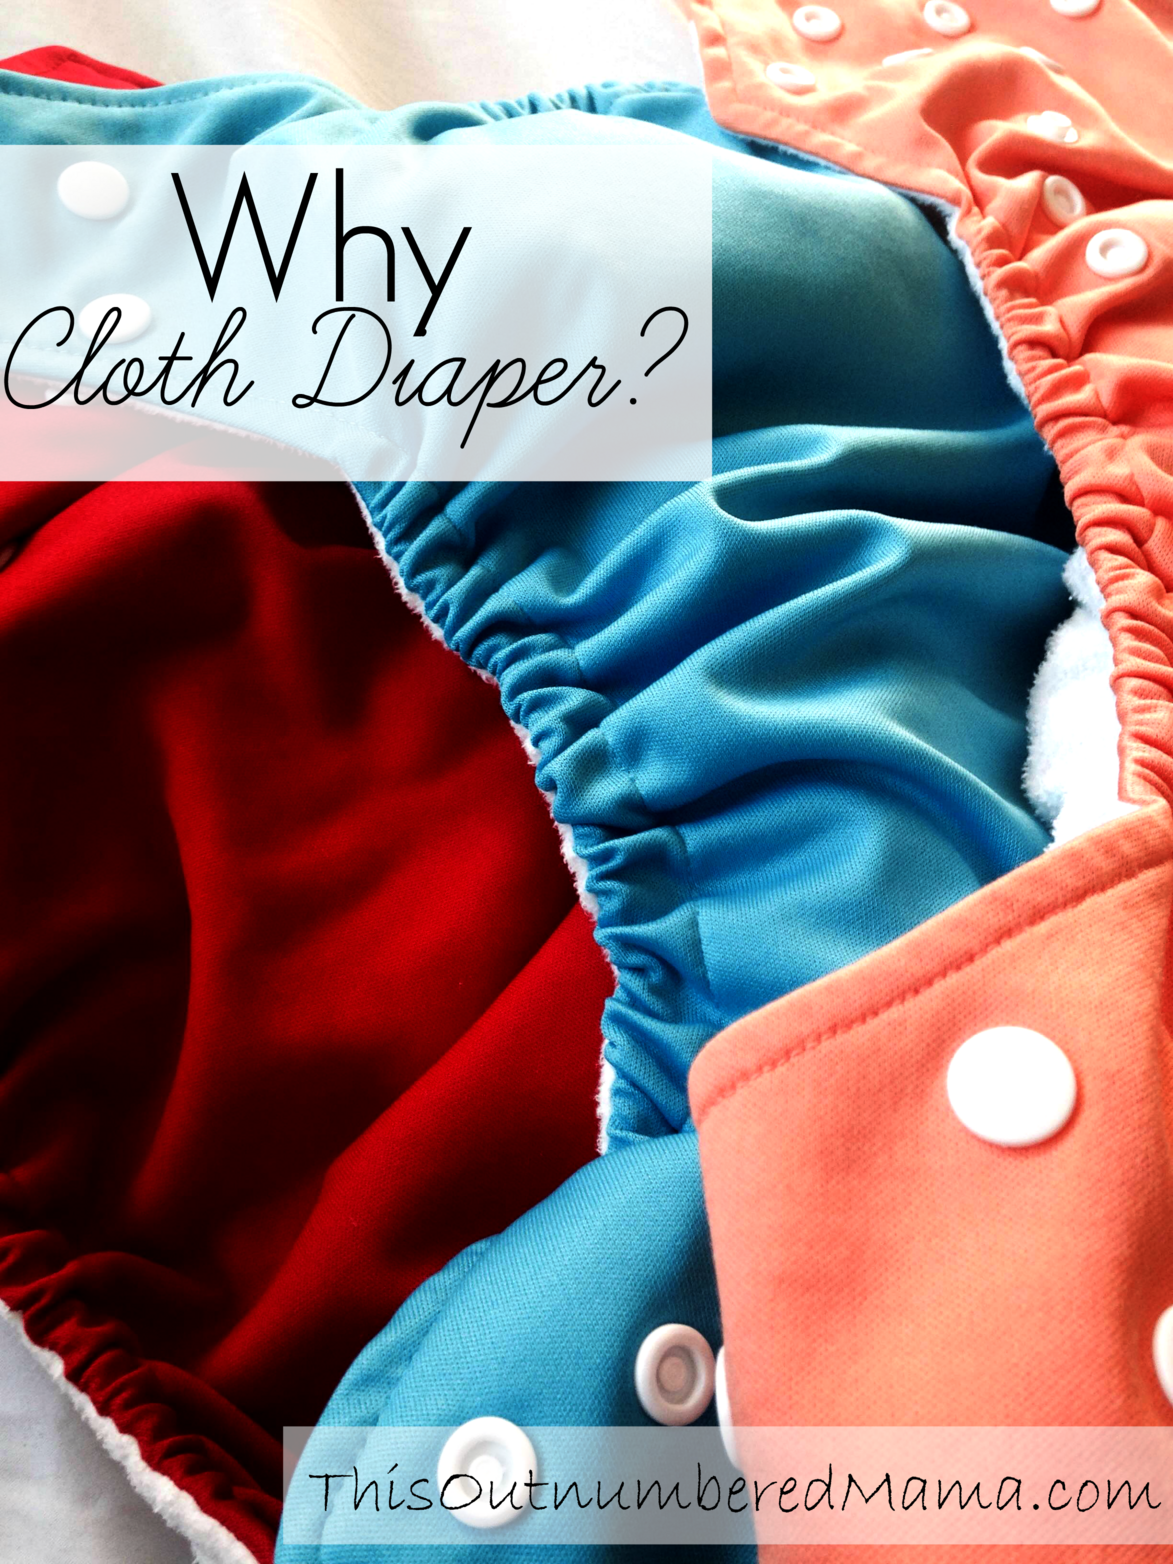 Why Cloth Diaper?